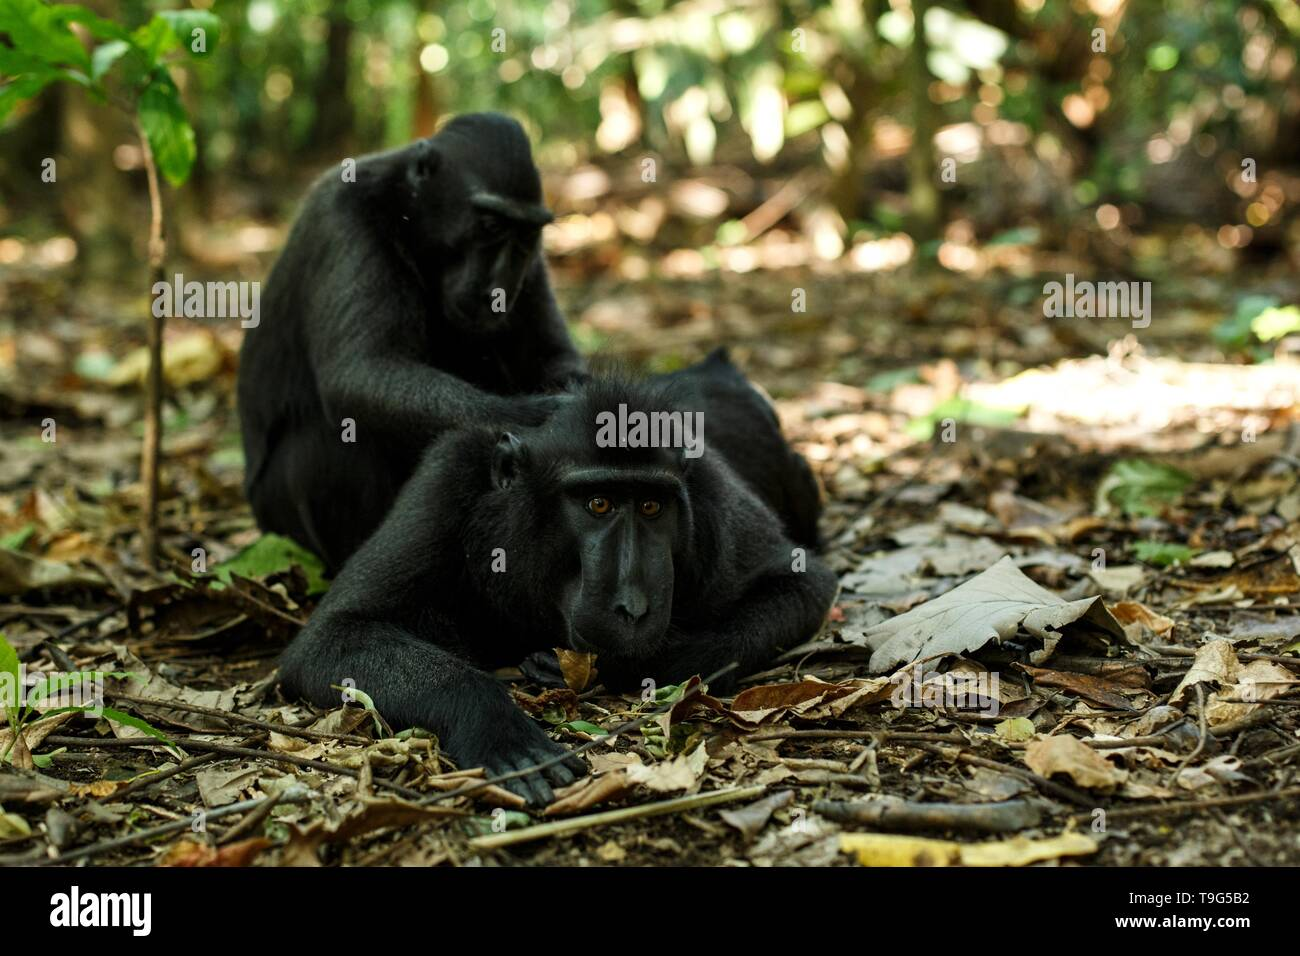 Celebes crested macaques grooming themselves, typical behaviour, etology Endemic black crested macaque, Natural habitat. Unique mammals in Tangkoko Na - Stock Image